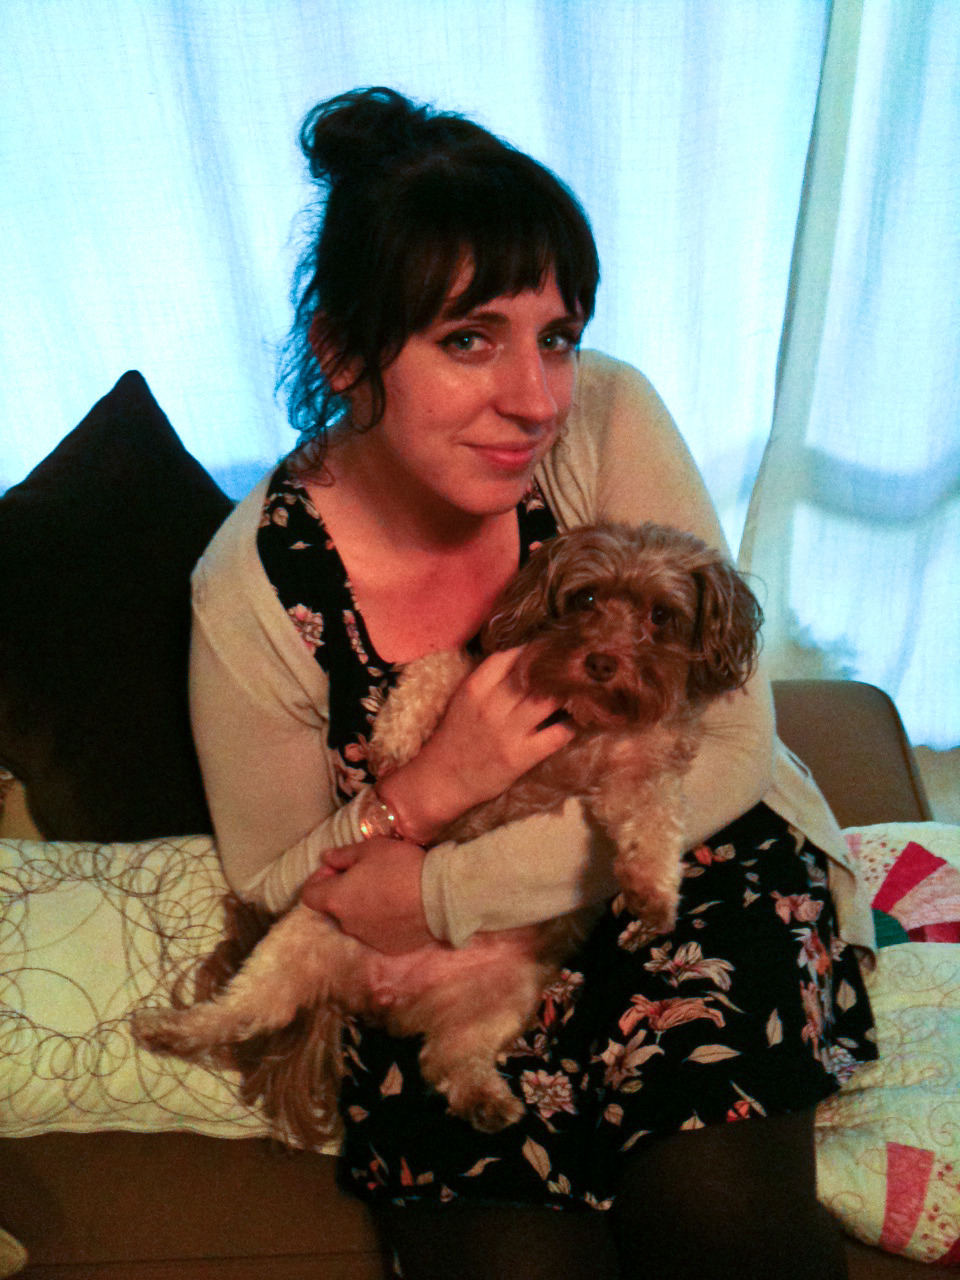 Fuzzy Animal Friday - Me and Annie edition, Because Annie makes everything better.